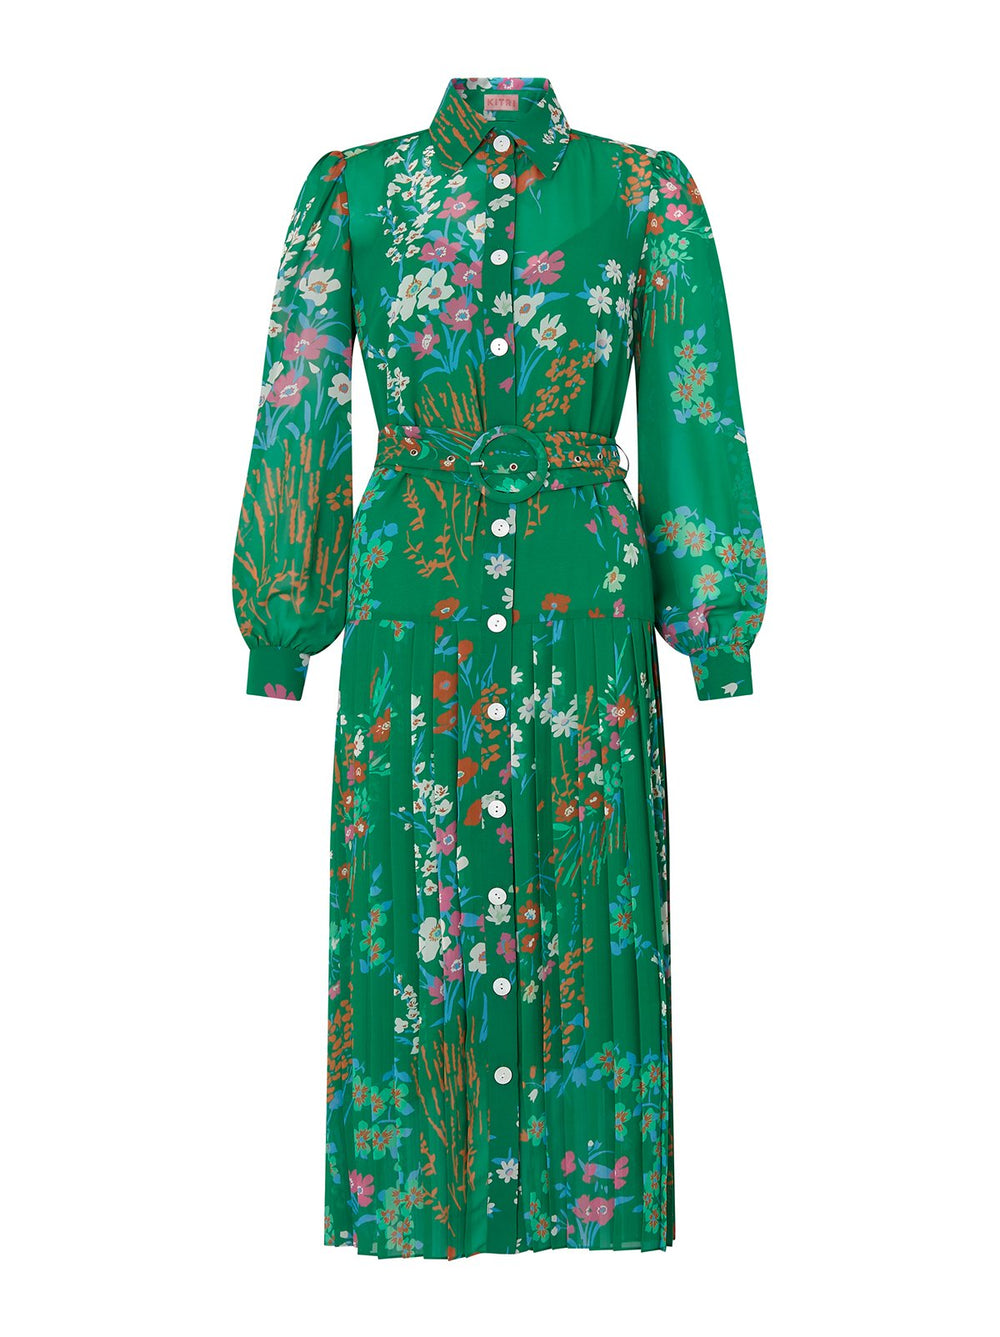 Tara Green Floral Print Shirt Dress by KITRI Studio